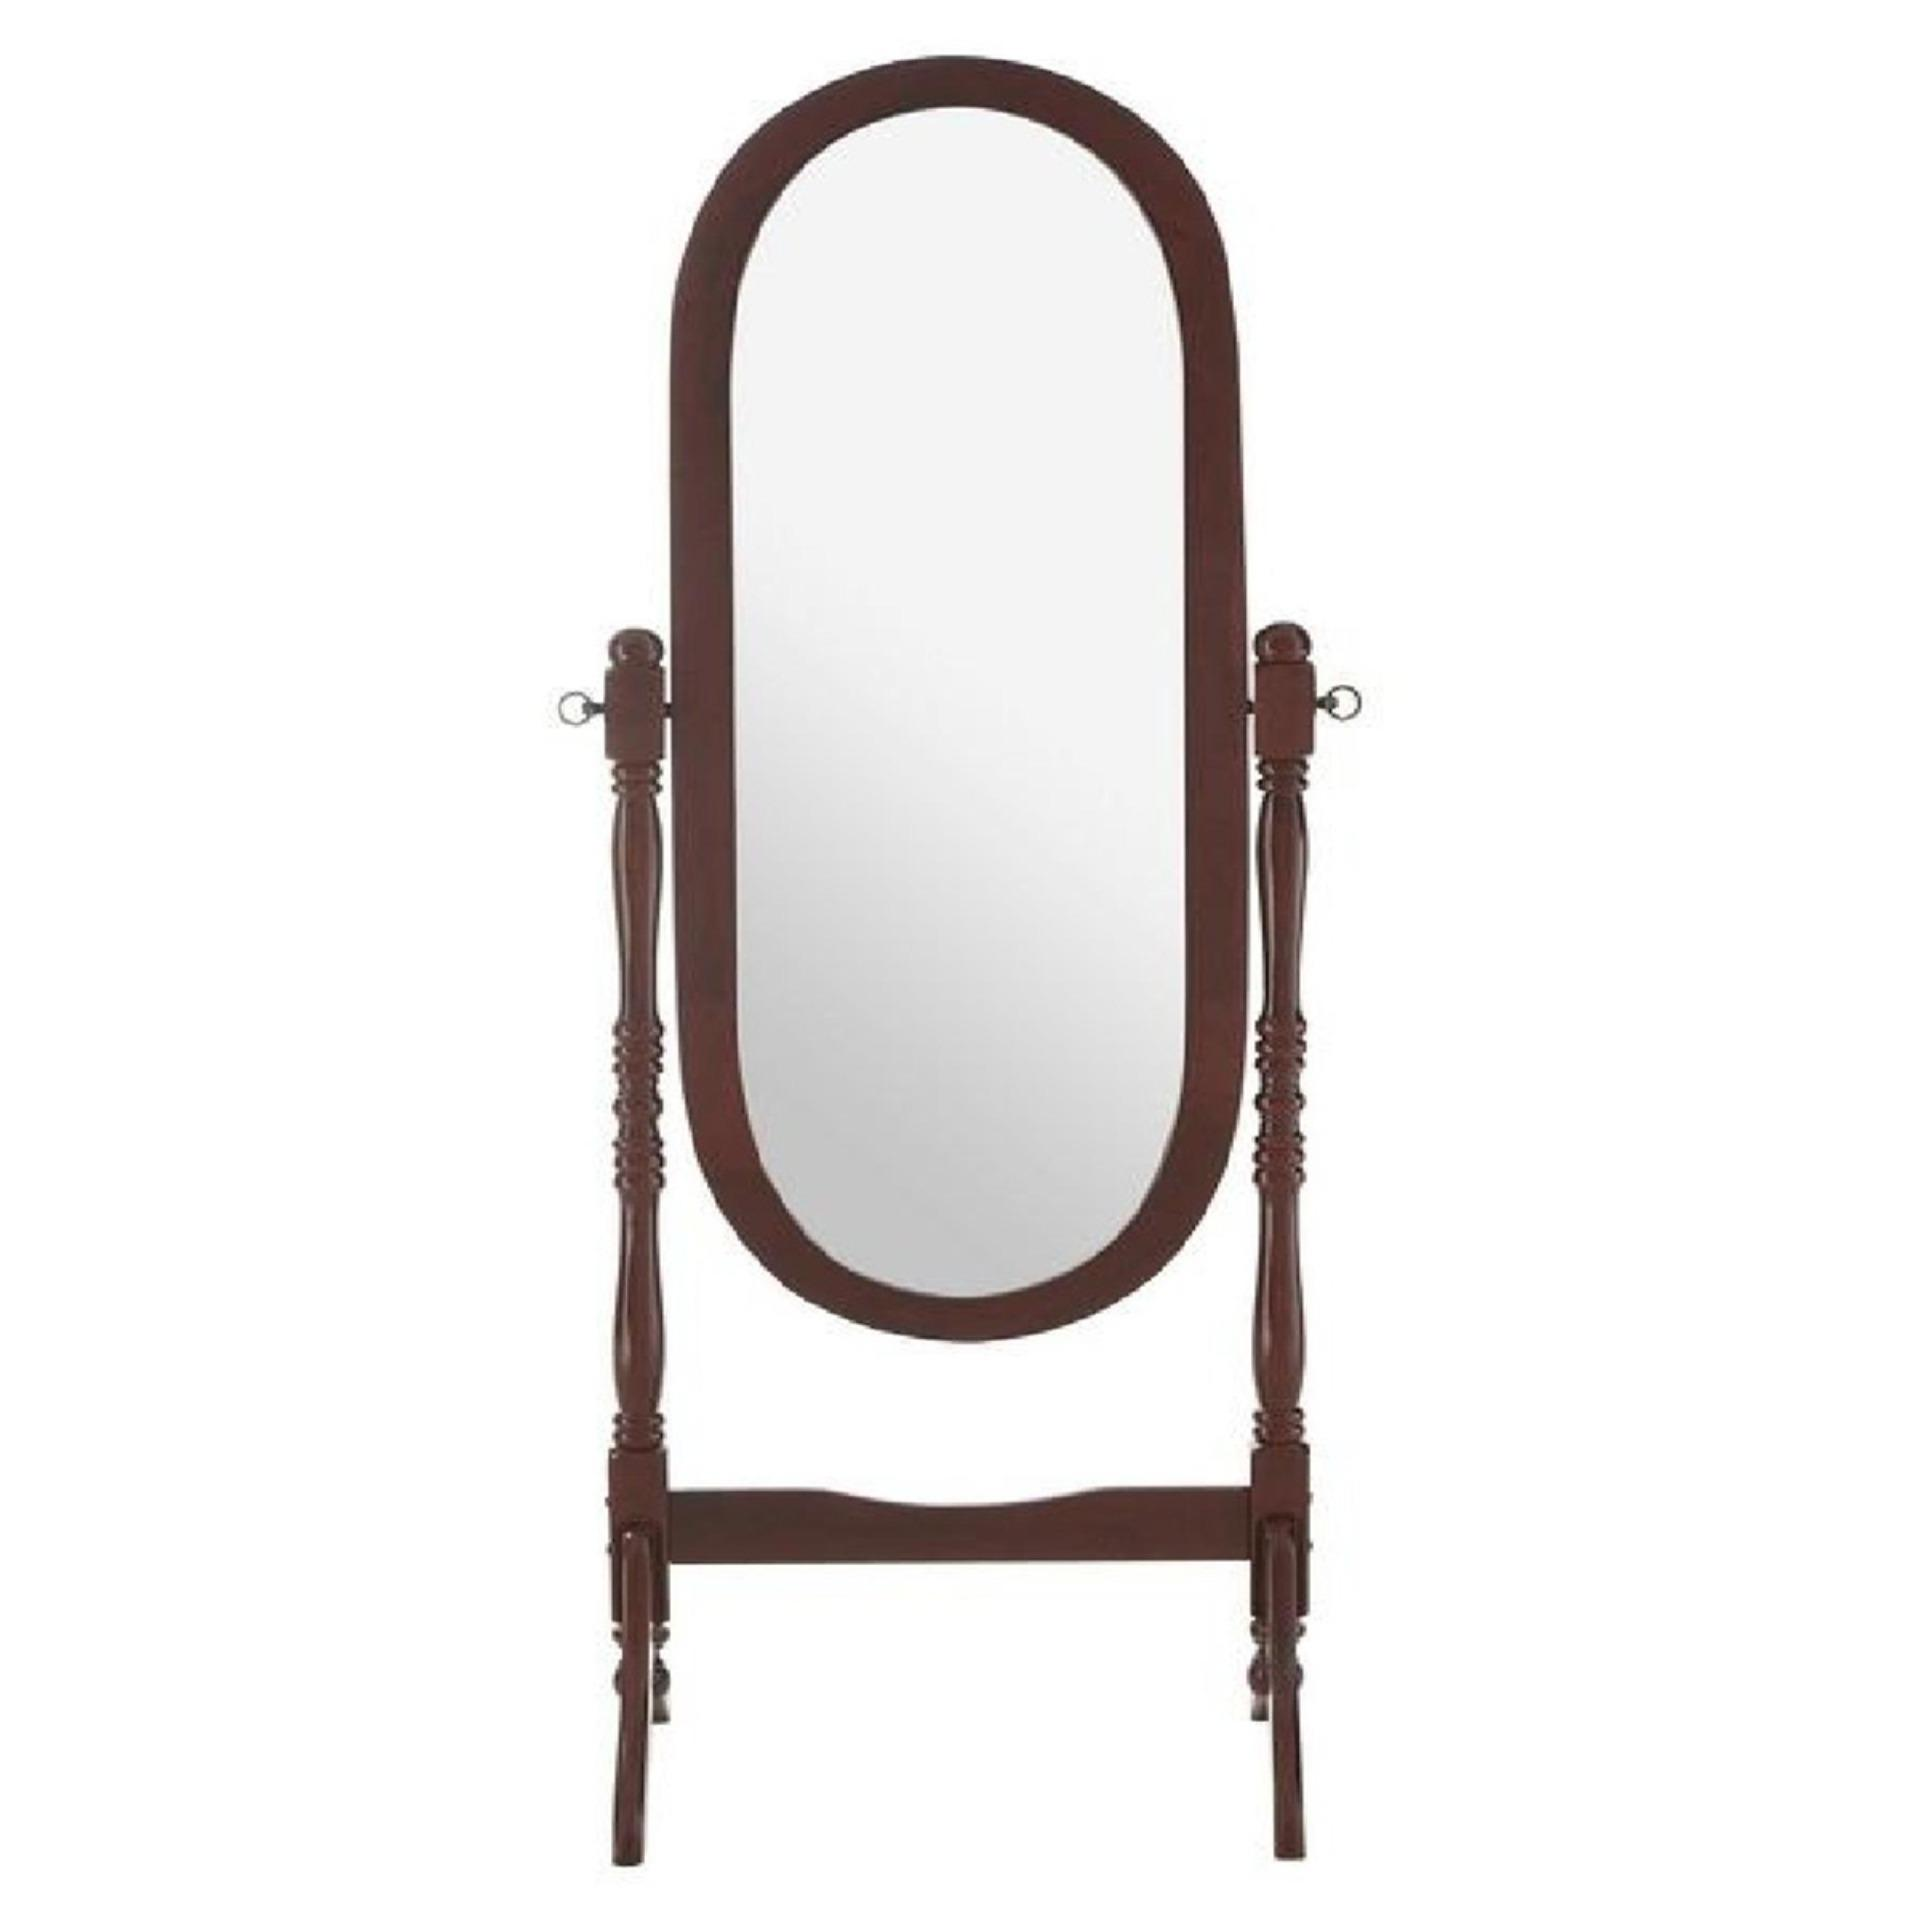 Oval Cheval Mirror, Floor Standing, Mahogany Finish Frame